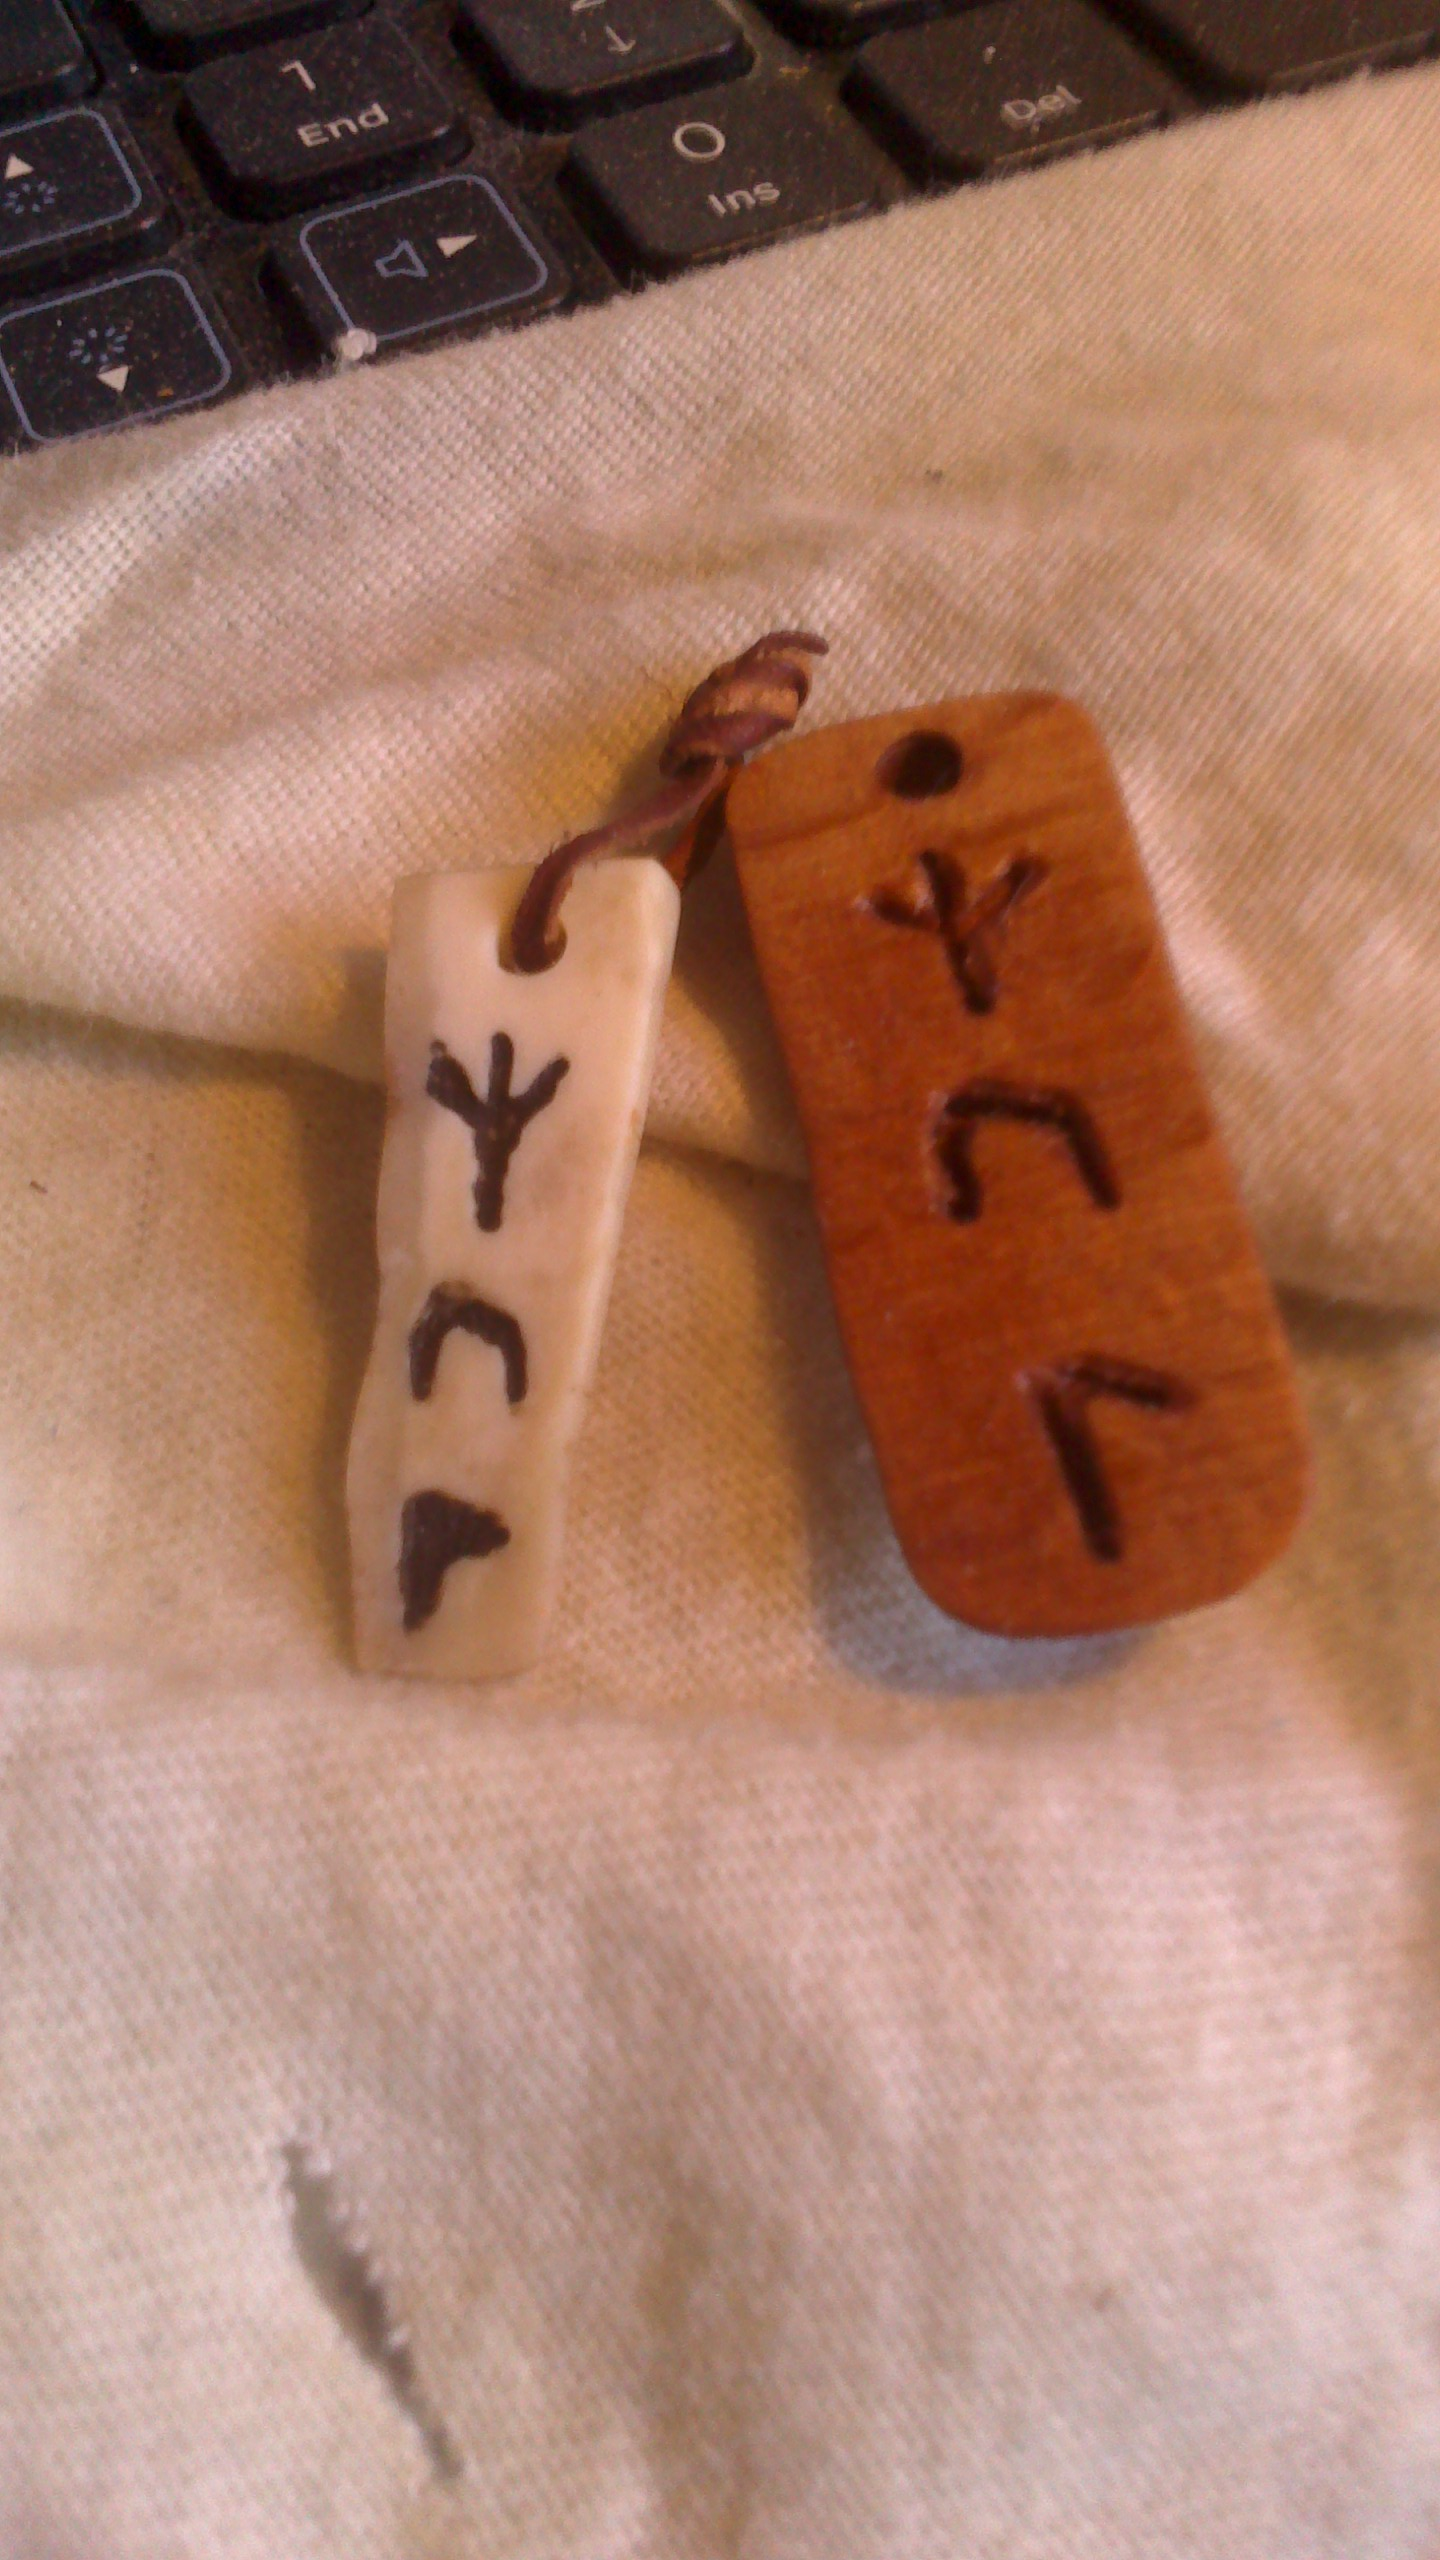 Norse rune charms